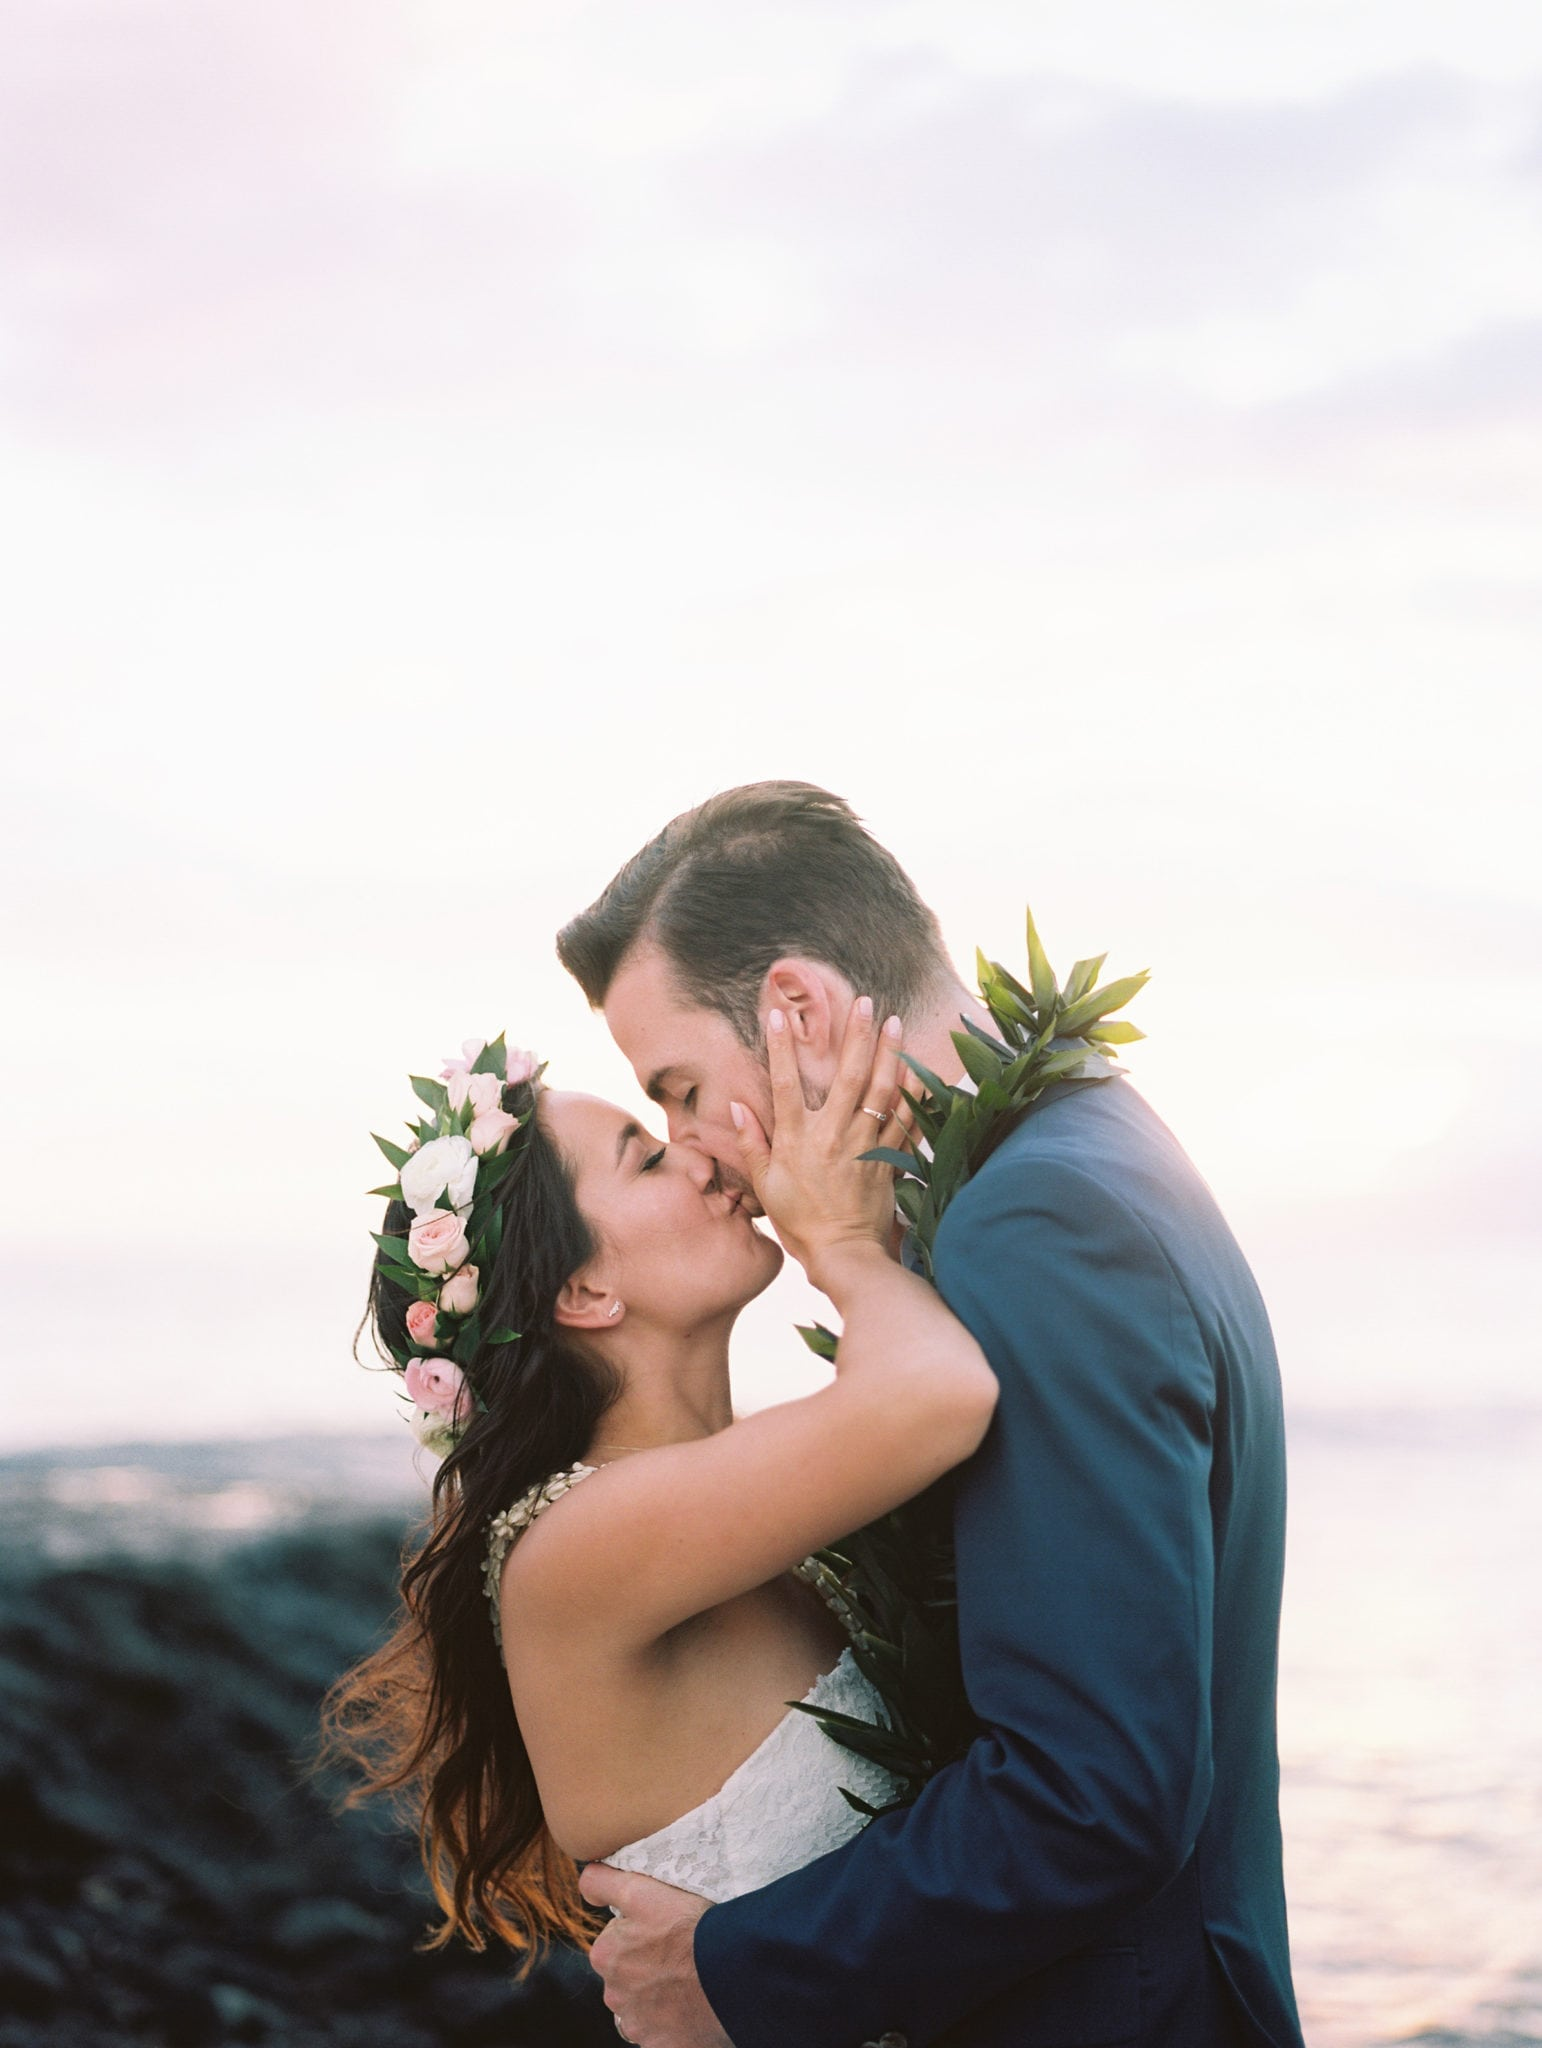 Bride and Groom Kissing in Hawaii | Weddings in Maui | Maui's Angels